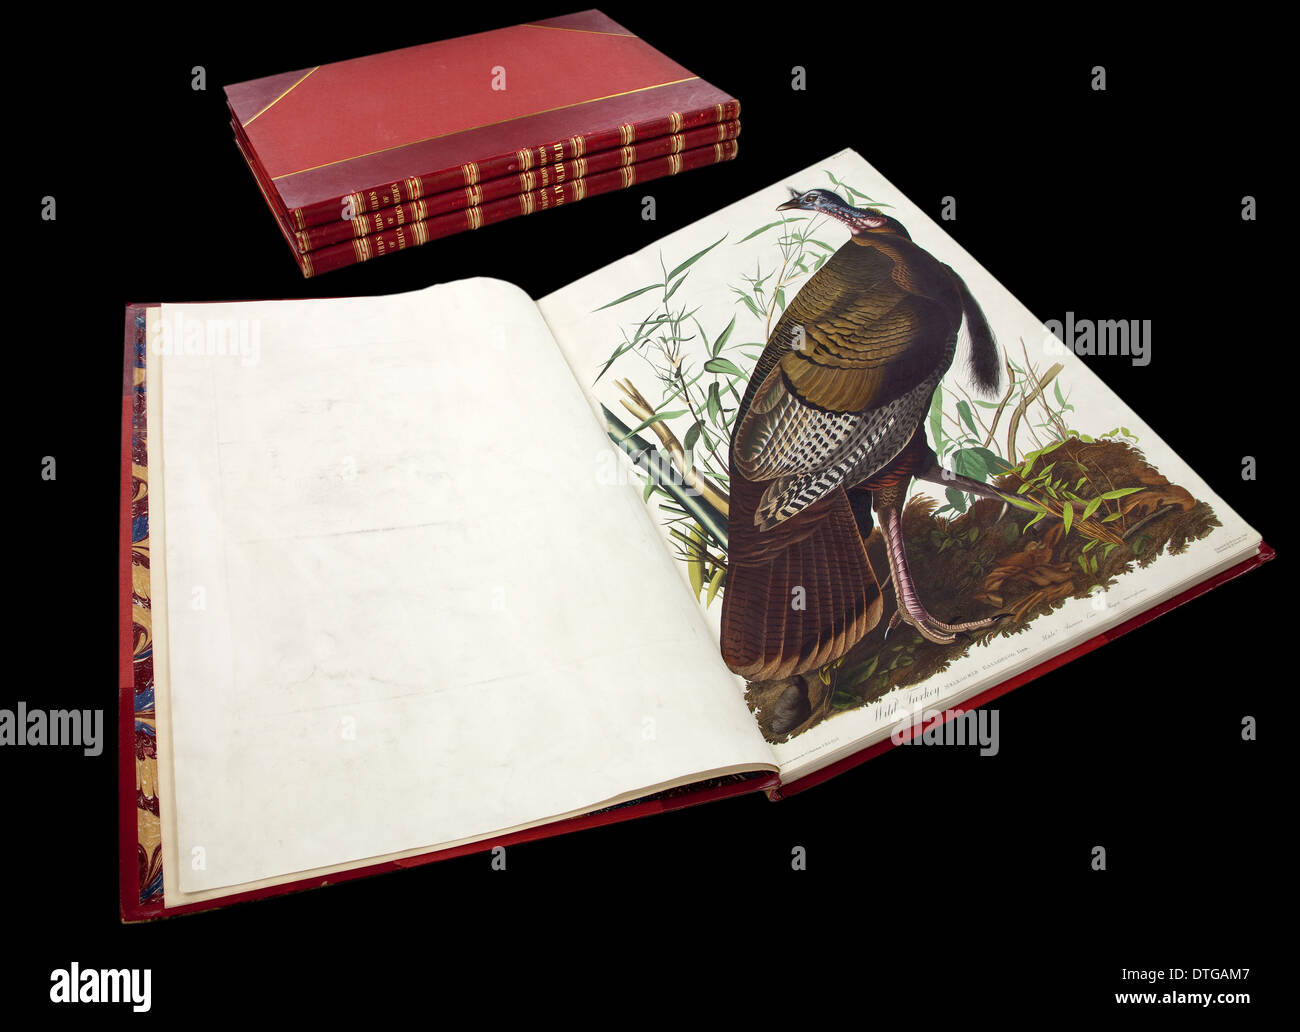 Bound copy of The Birds of America by John James Audubon, showing plate 1, the wild turkey. - Stock Image